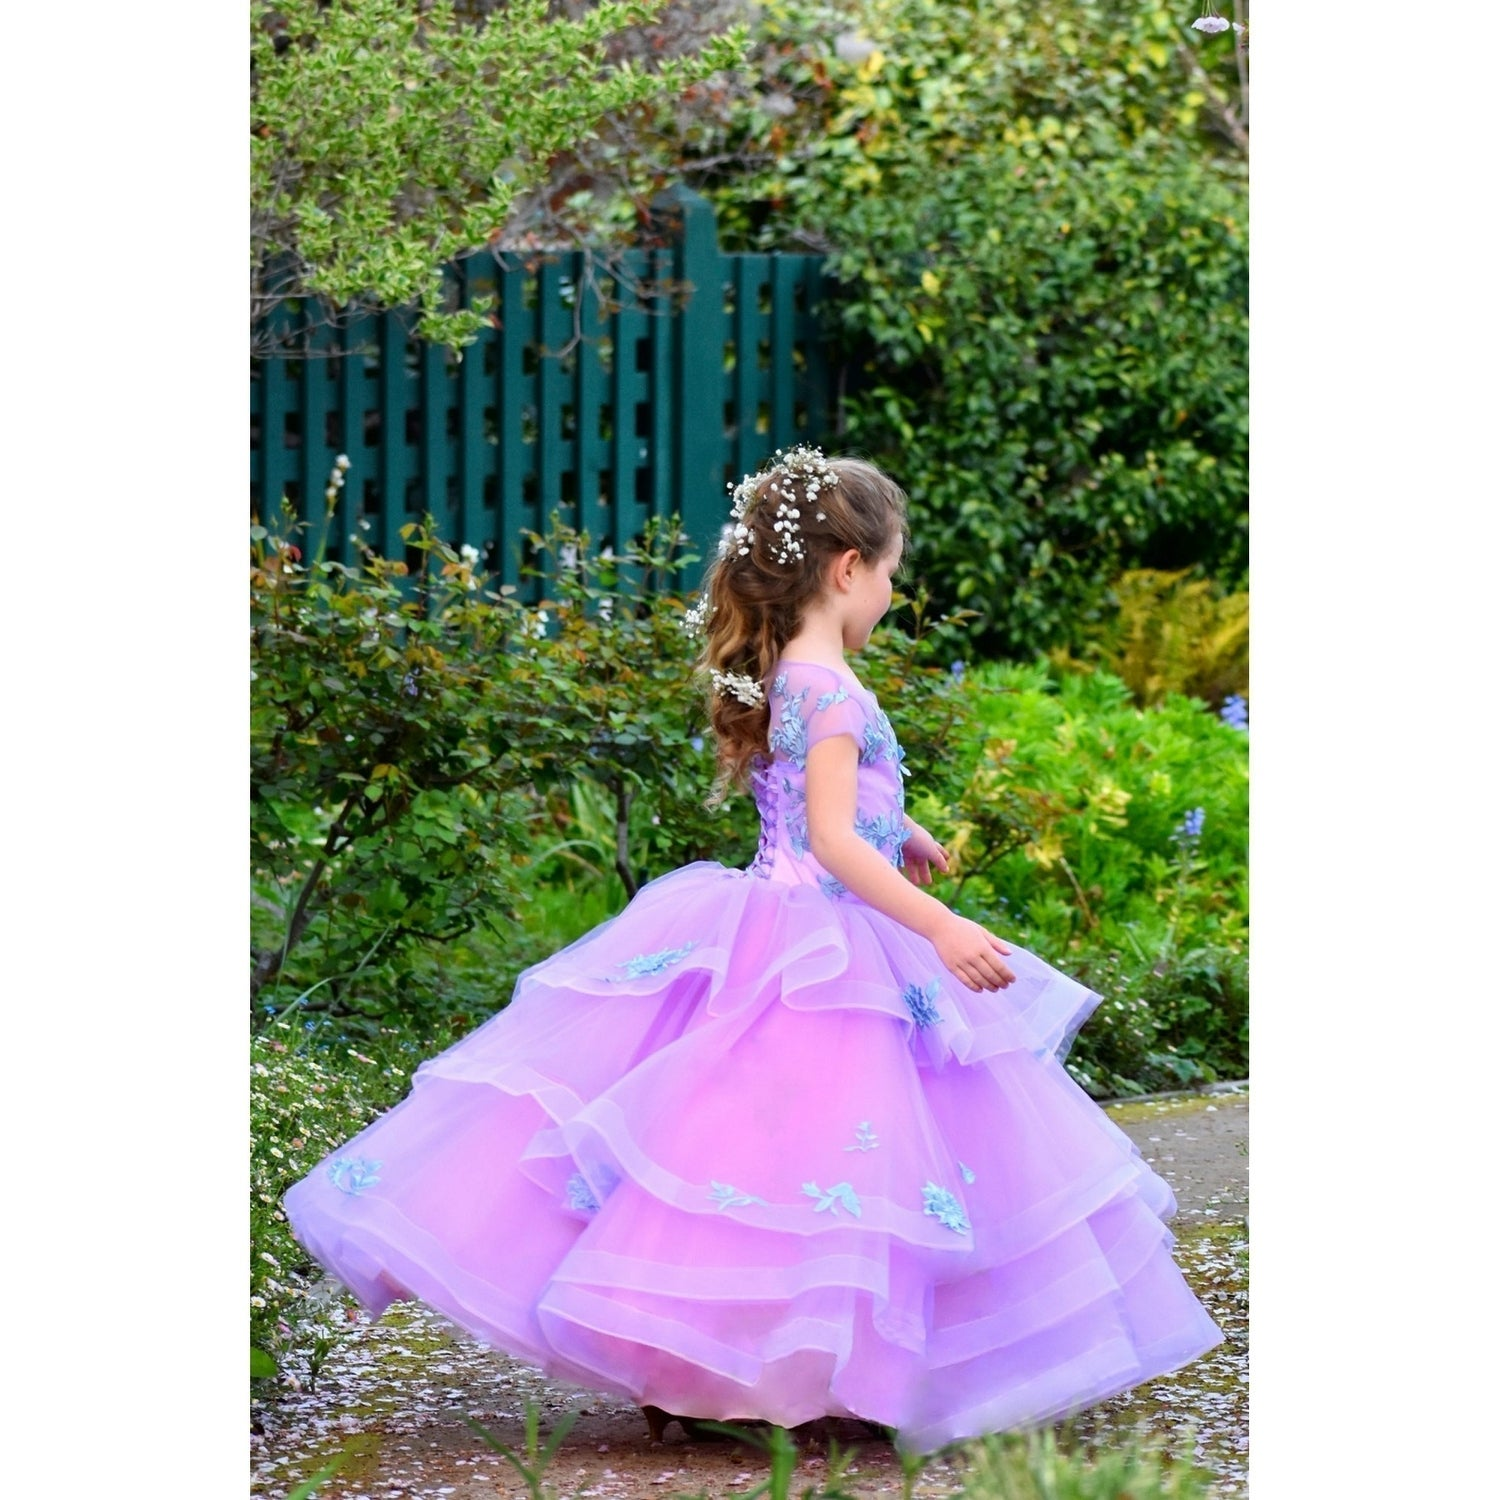 e6875d3e9c86 Shop Little Girls Lilac Embroidered Applique Multi-Layer Tulle Flower Girl  Dress 5/6 - Free Shipping Today - Overstock - 25542512